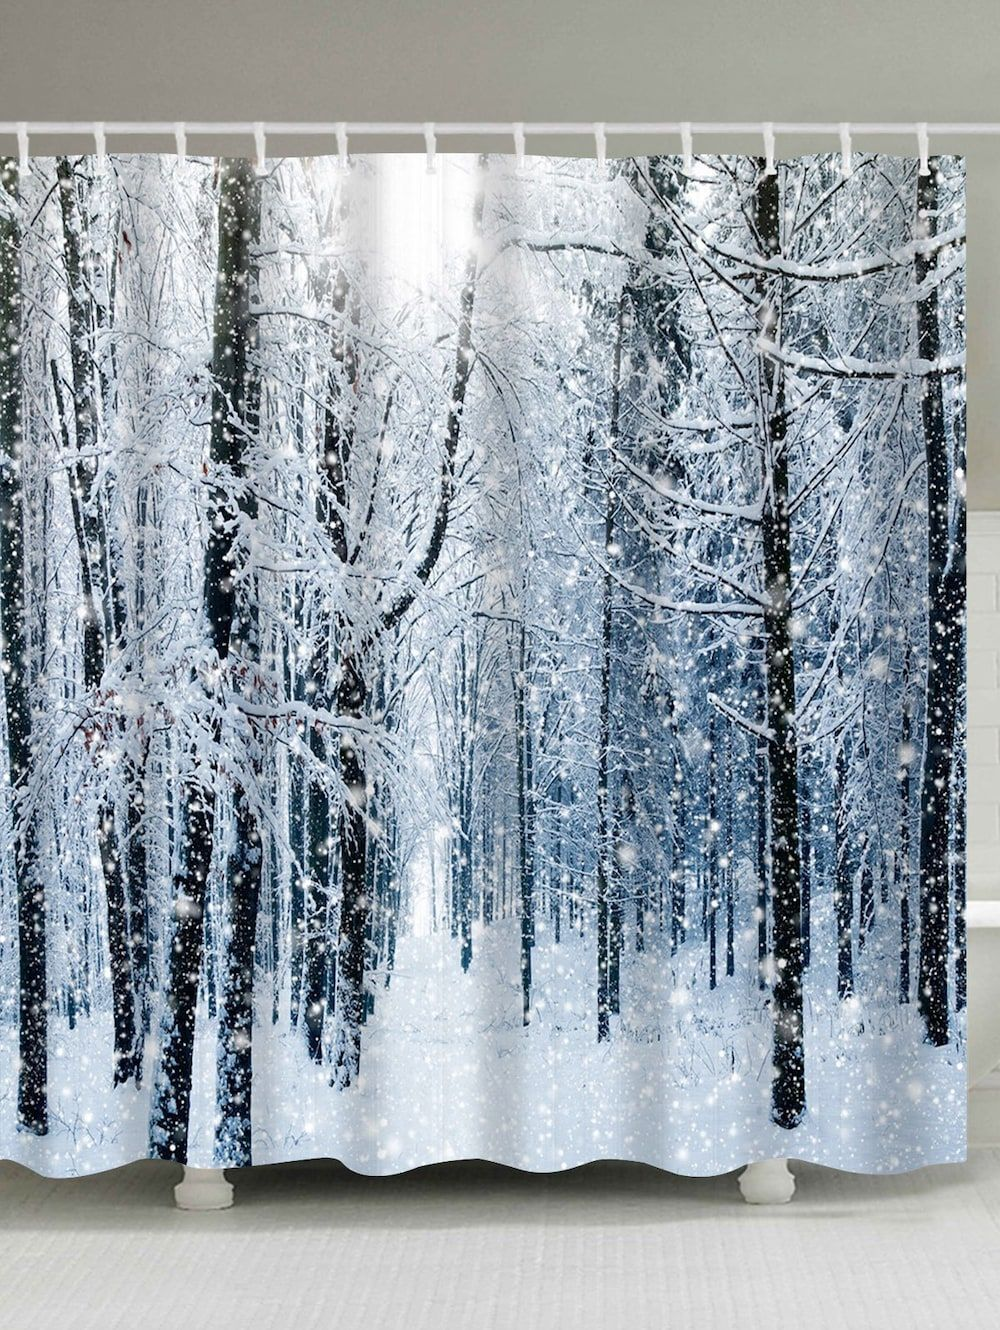 Christmas Snow Forest Print Waterproof Bath Curtain Christmas